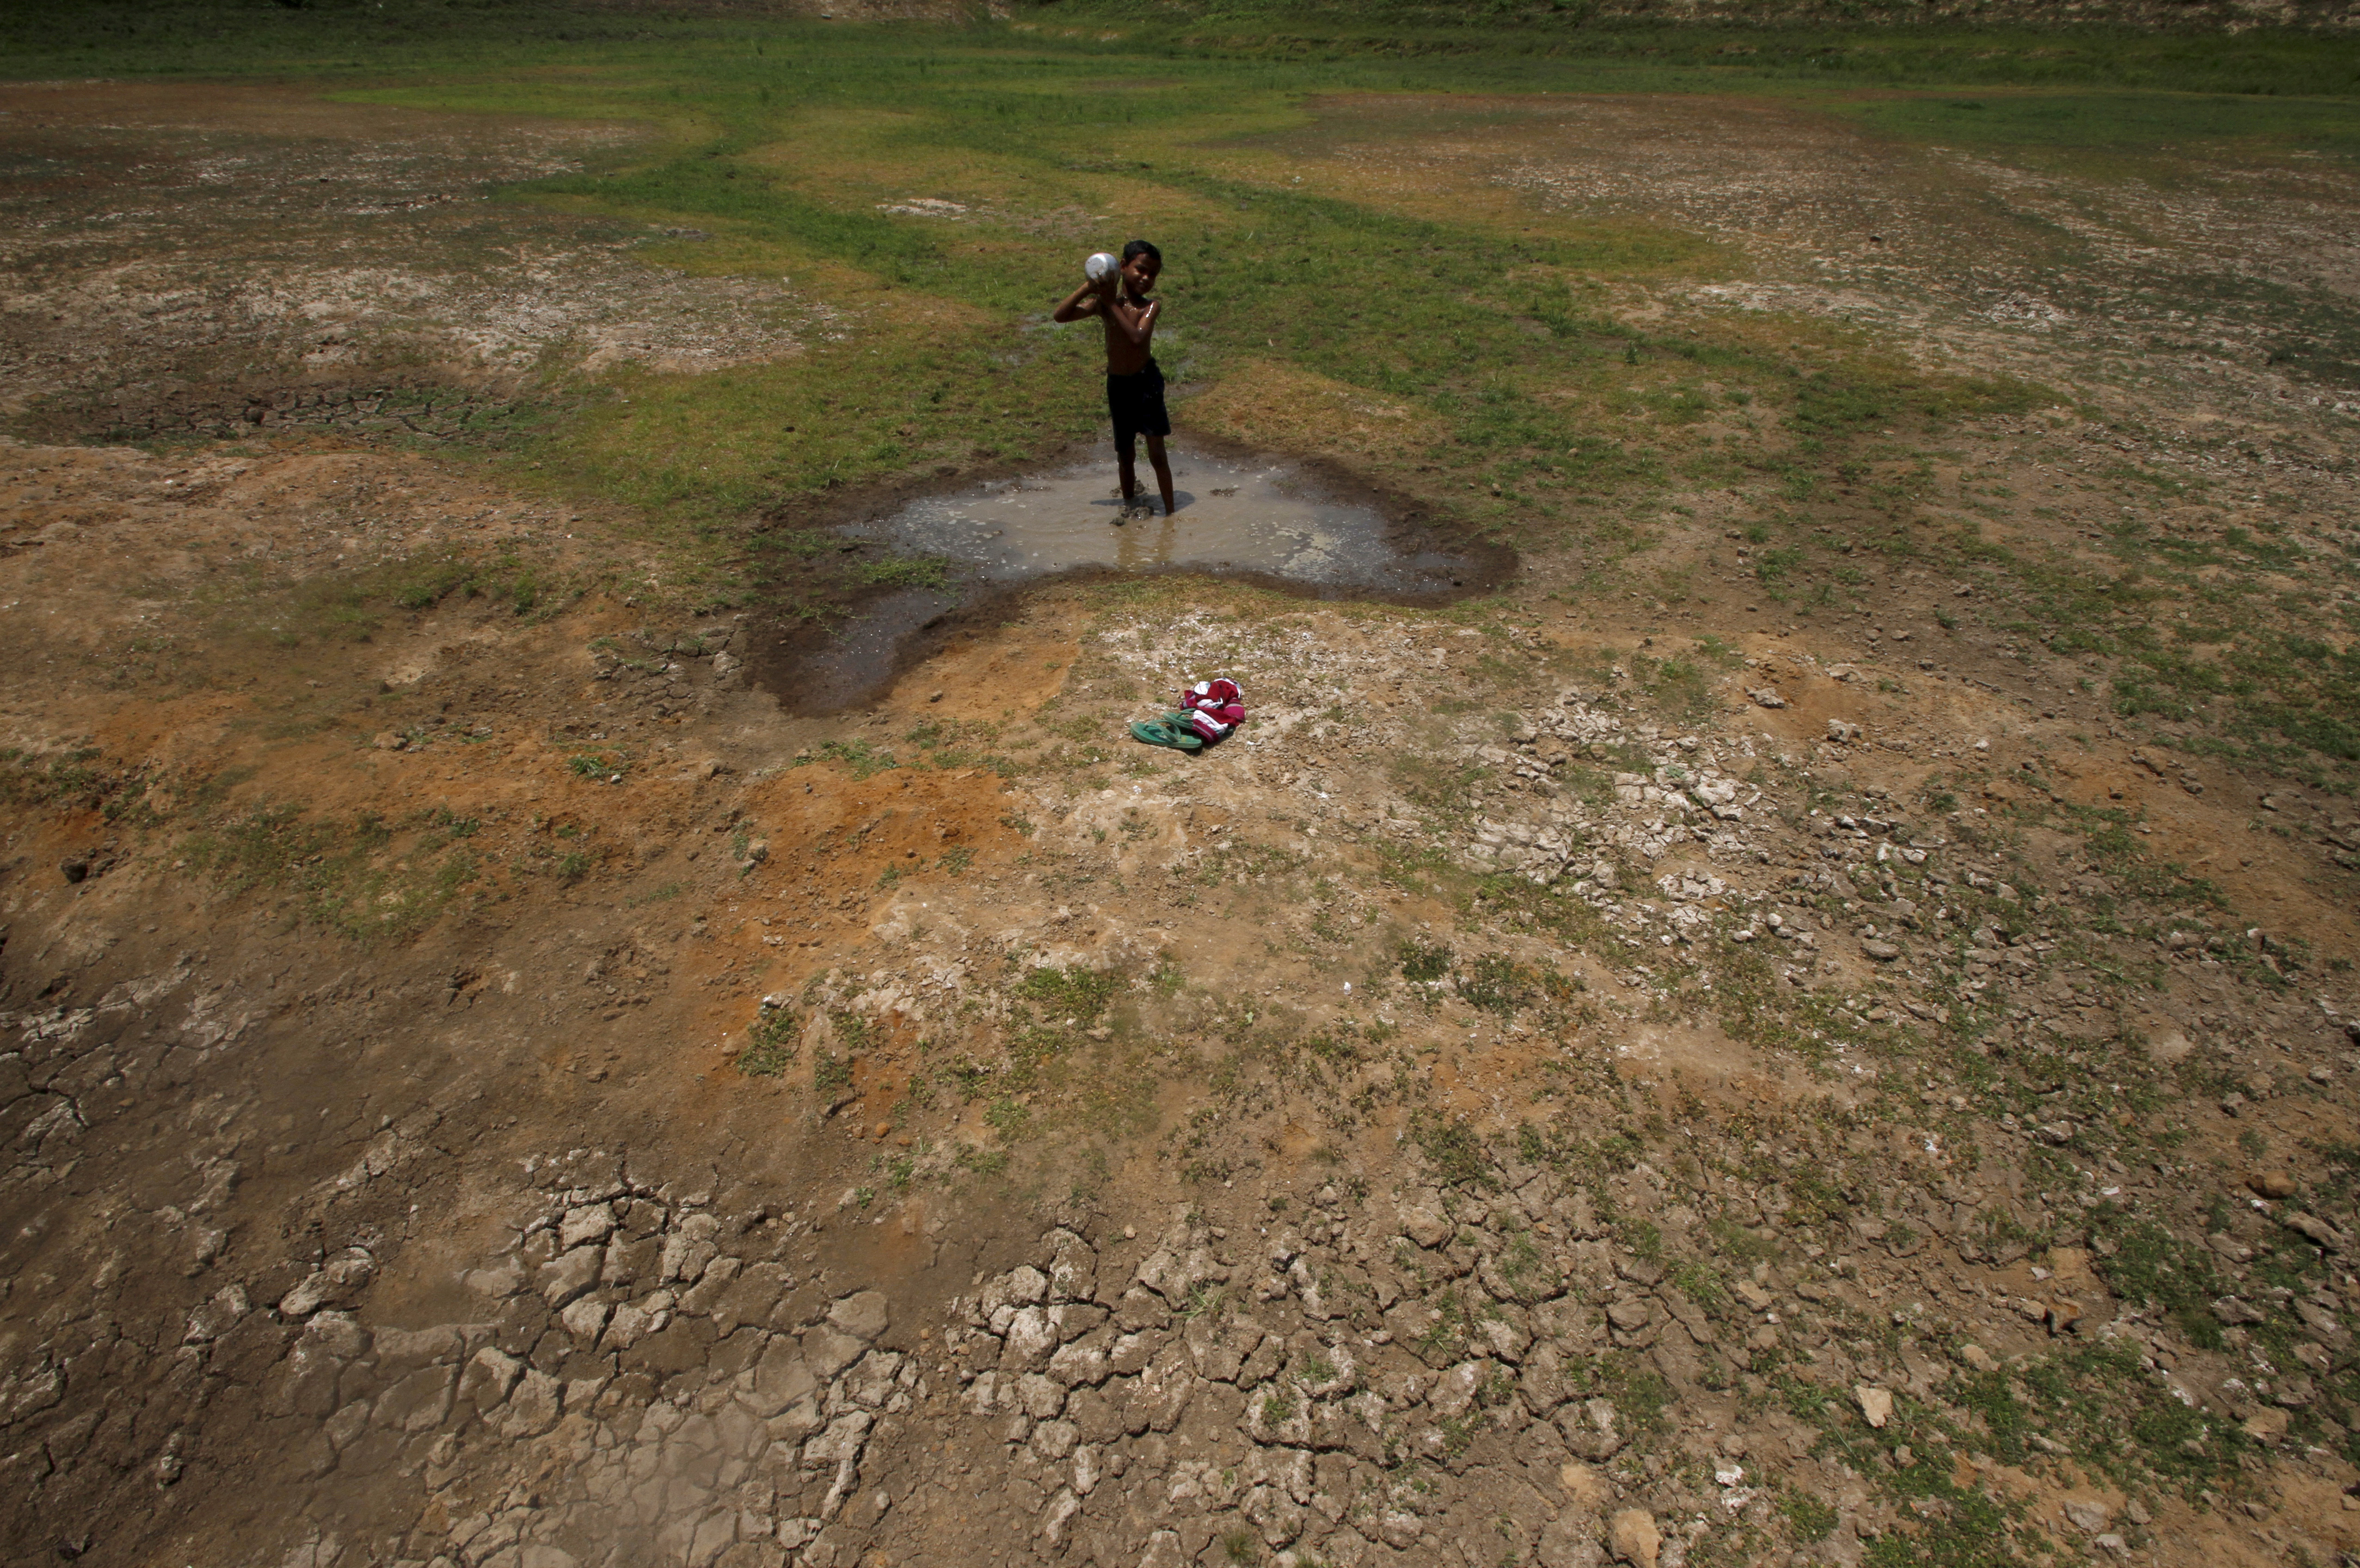 A village boy baths in the remaining water of a dried pond to beat the heat in the outskirts of the eastern Indian city of Bhubaneswar on April 23, 2016